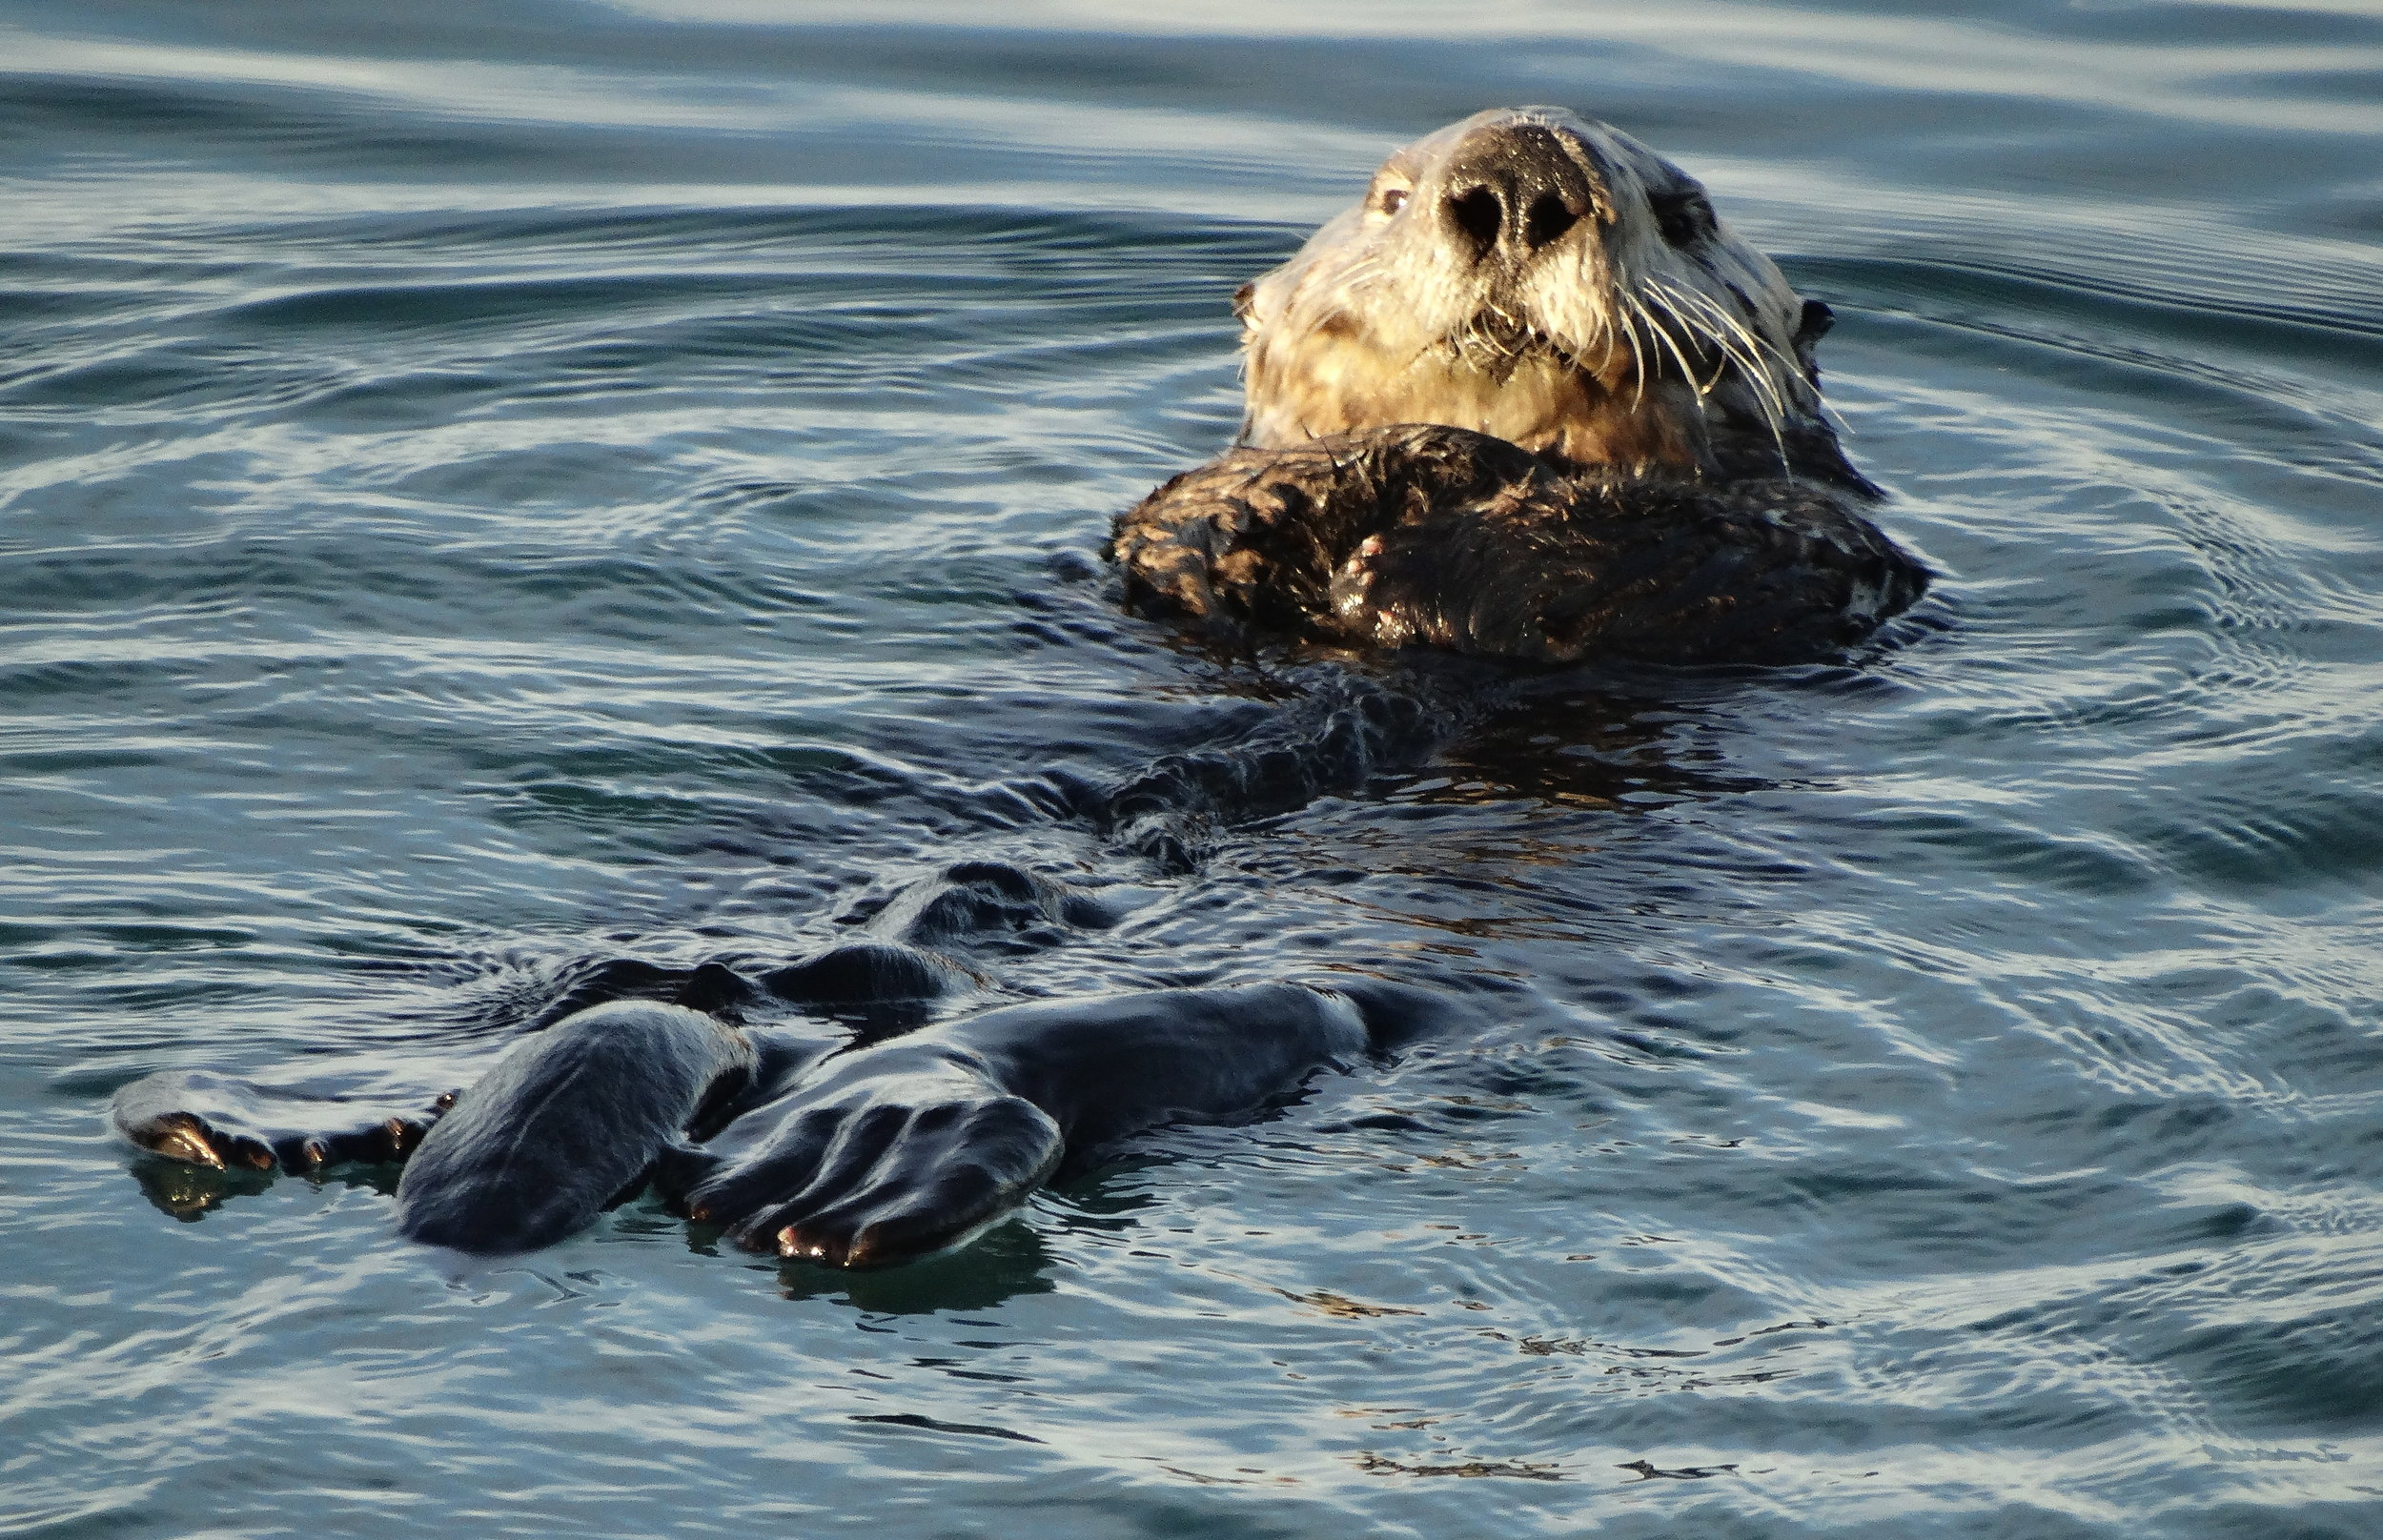 Sea Otter Floats, Noms, and Navigates the High Seas 1